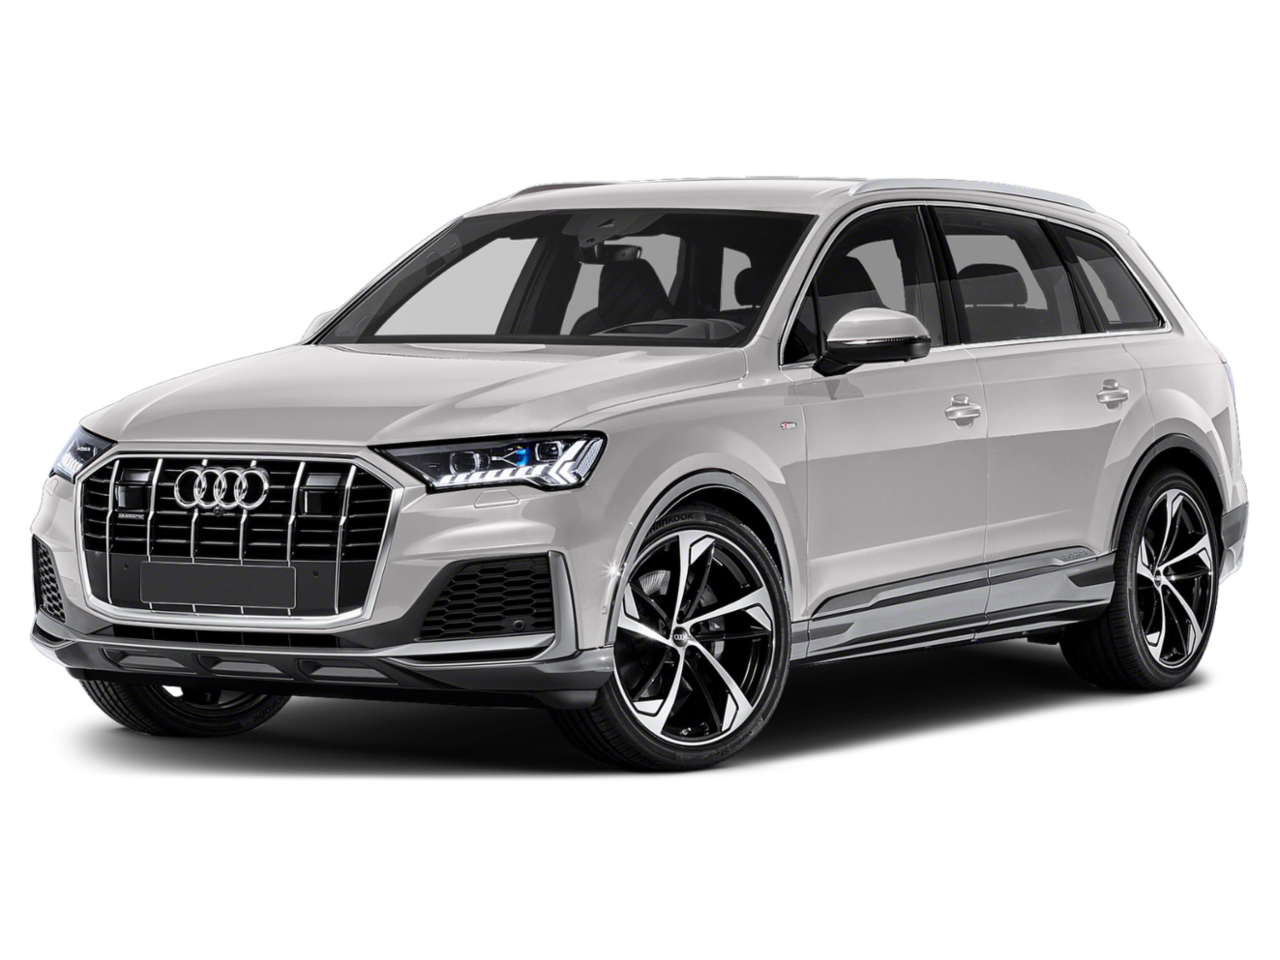 Buyer's Guide: 2020 Audi Q7